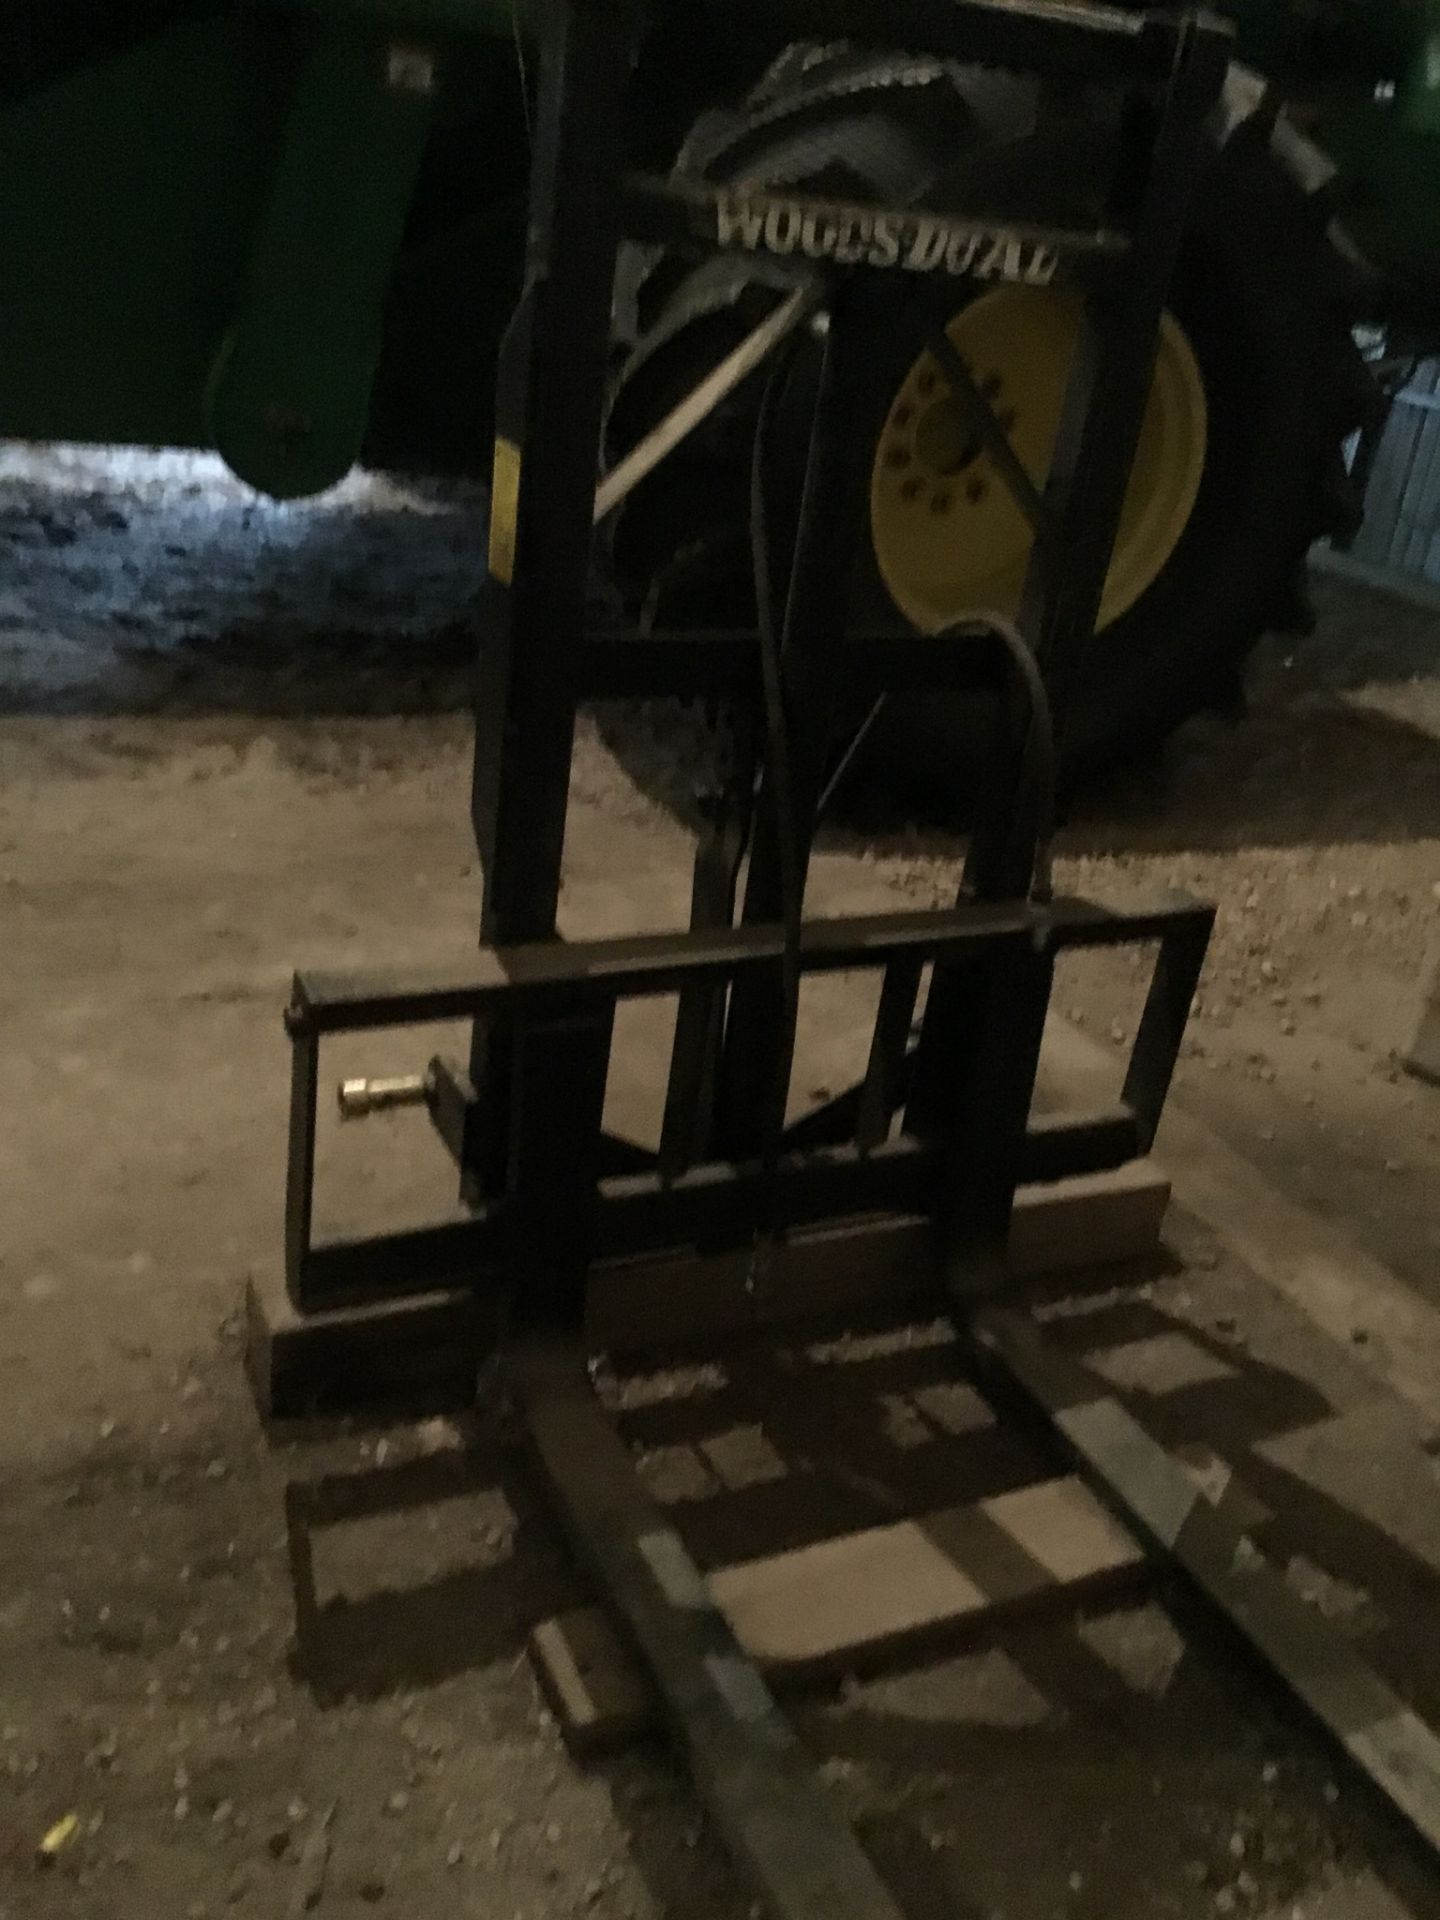 Woods Model 40 3Pt. Hitch Fork Lift 2 Stage, Serial #4560 - Image 4 of 4